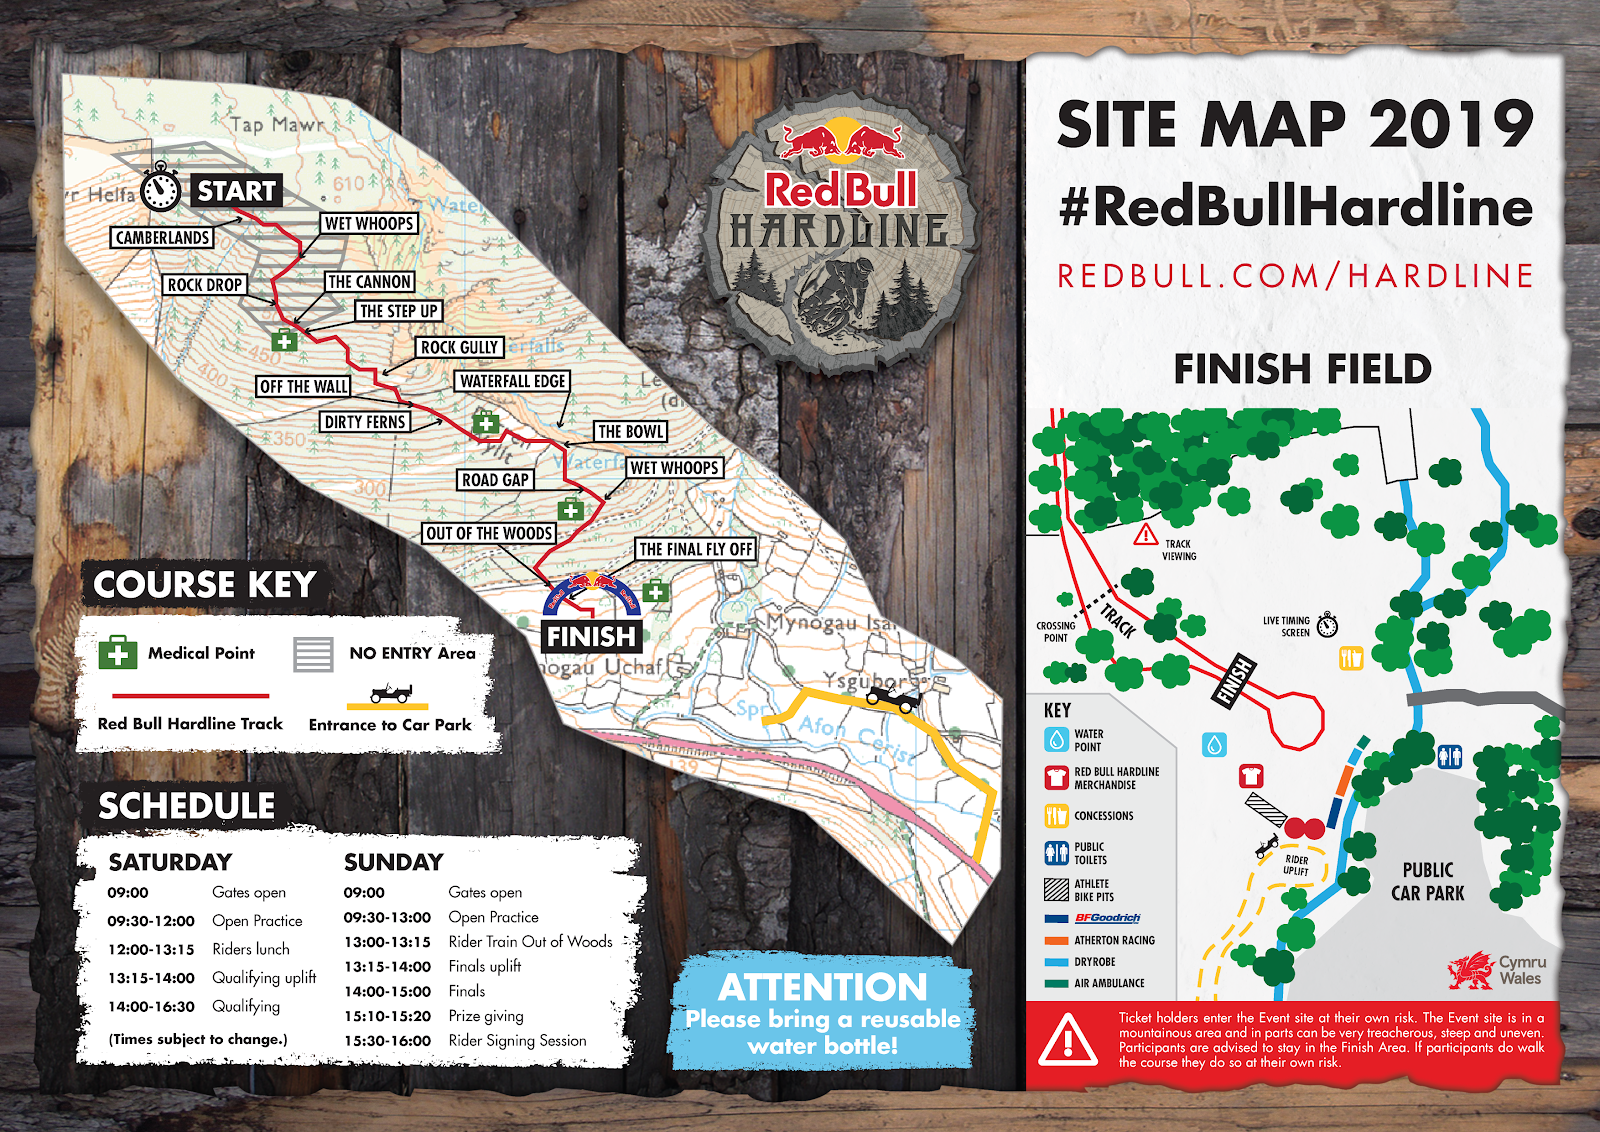 Seven reasons why you really need to watch this weekend's Red Bull Hardline